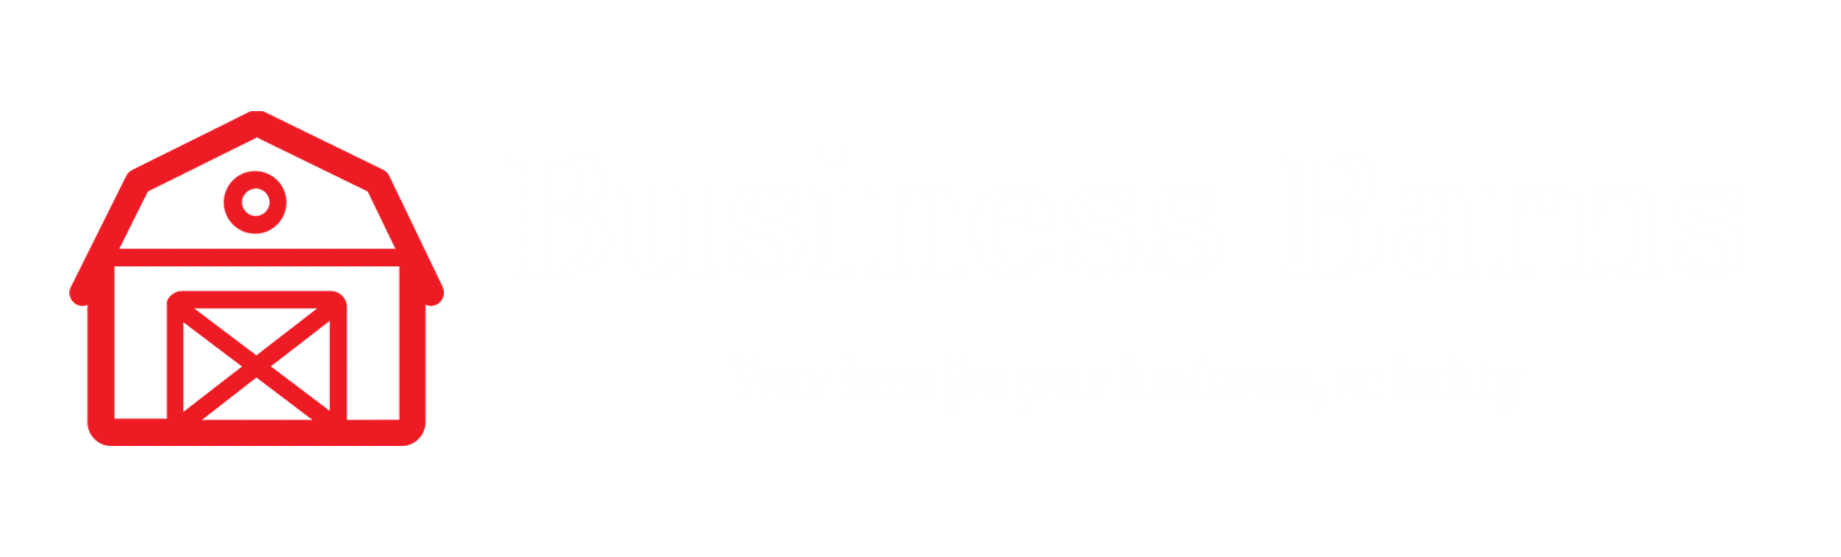 Business Barns